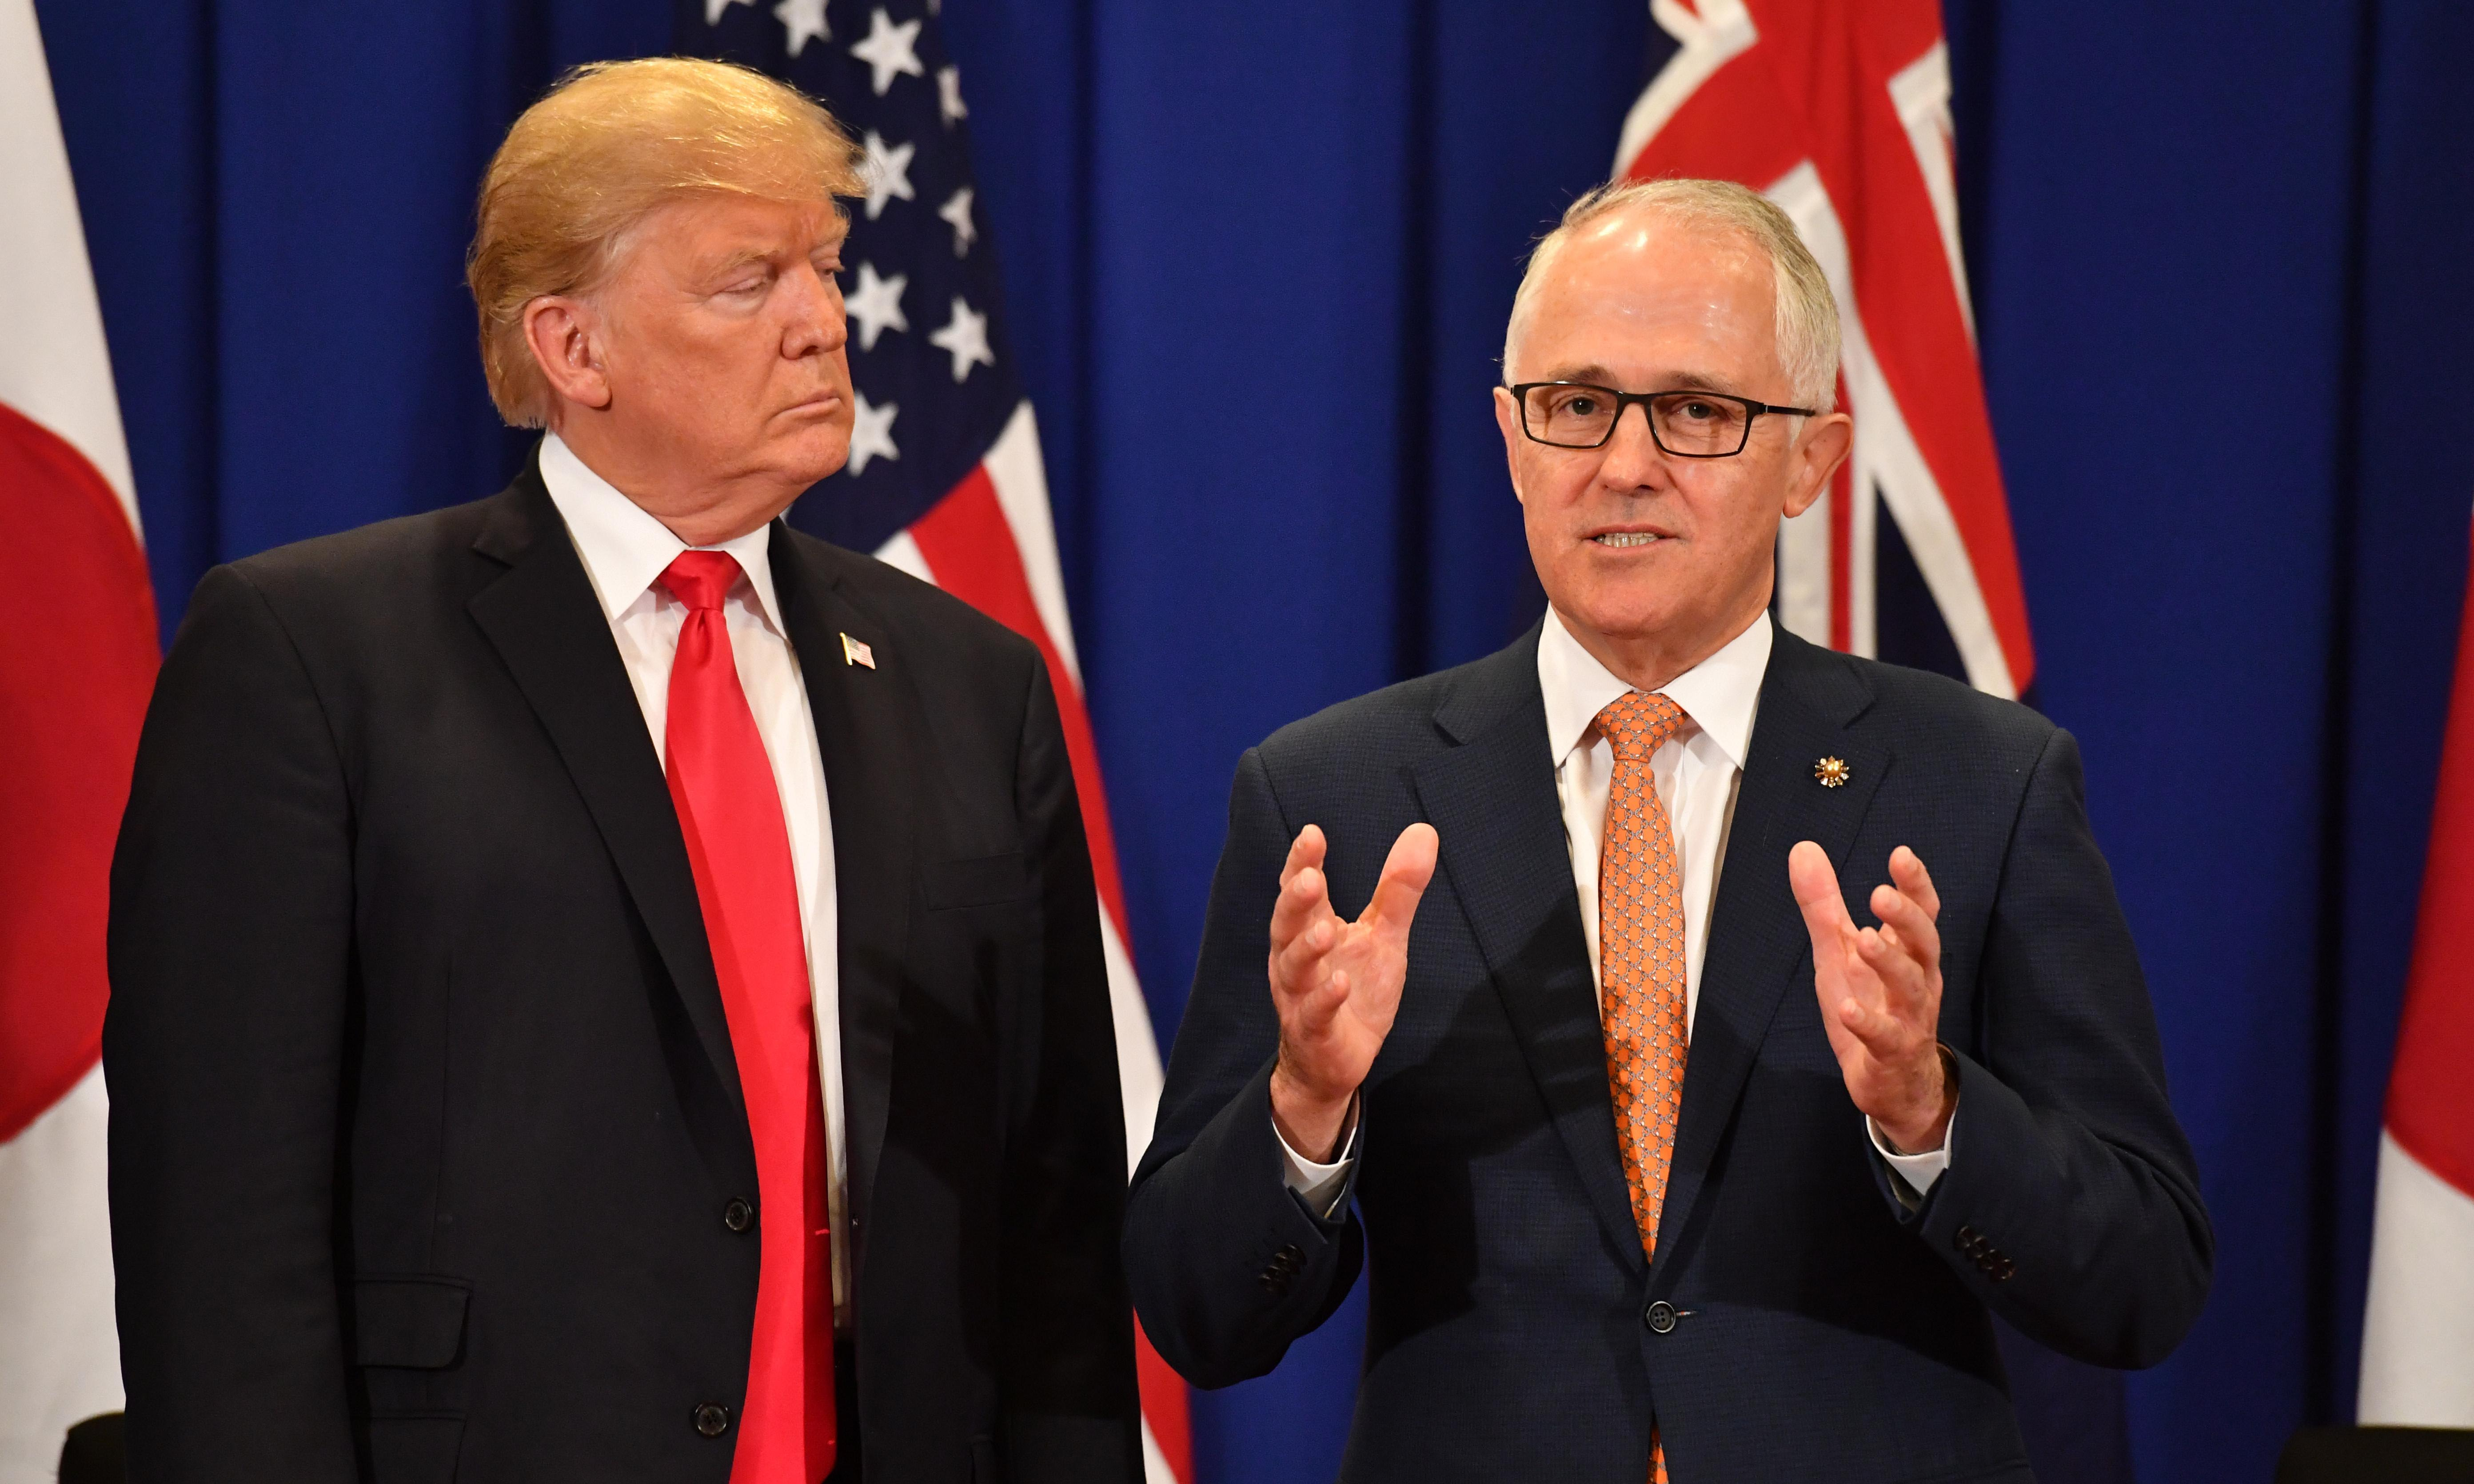 Former Australian PM Malcolm Turnbull says Trump is the world's 'leading climate denier'